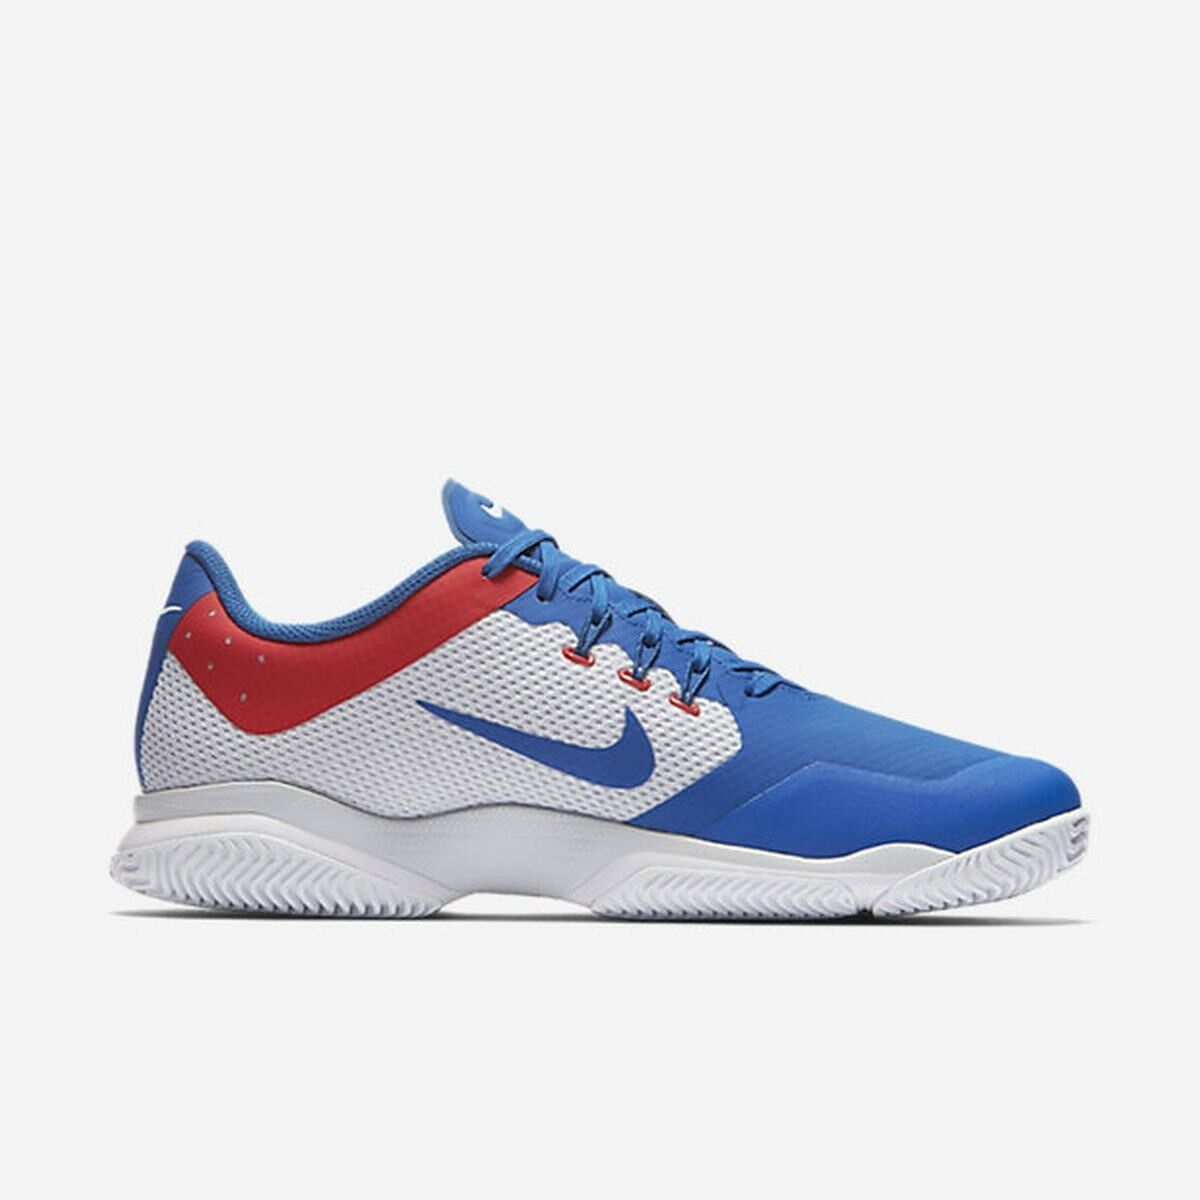 Nike air zoom ultra volume e 13 14 uomini e volume scarpe da tennis (845007 114) 907715